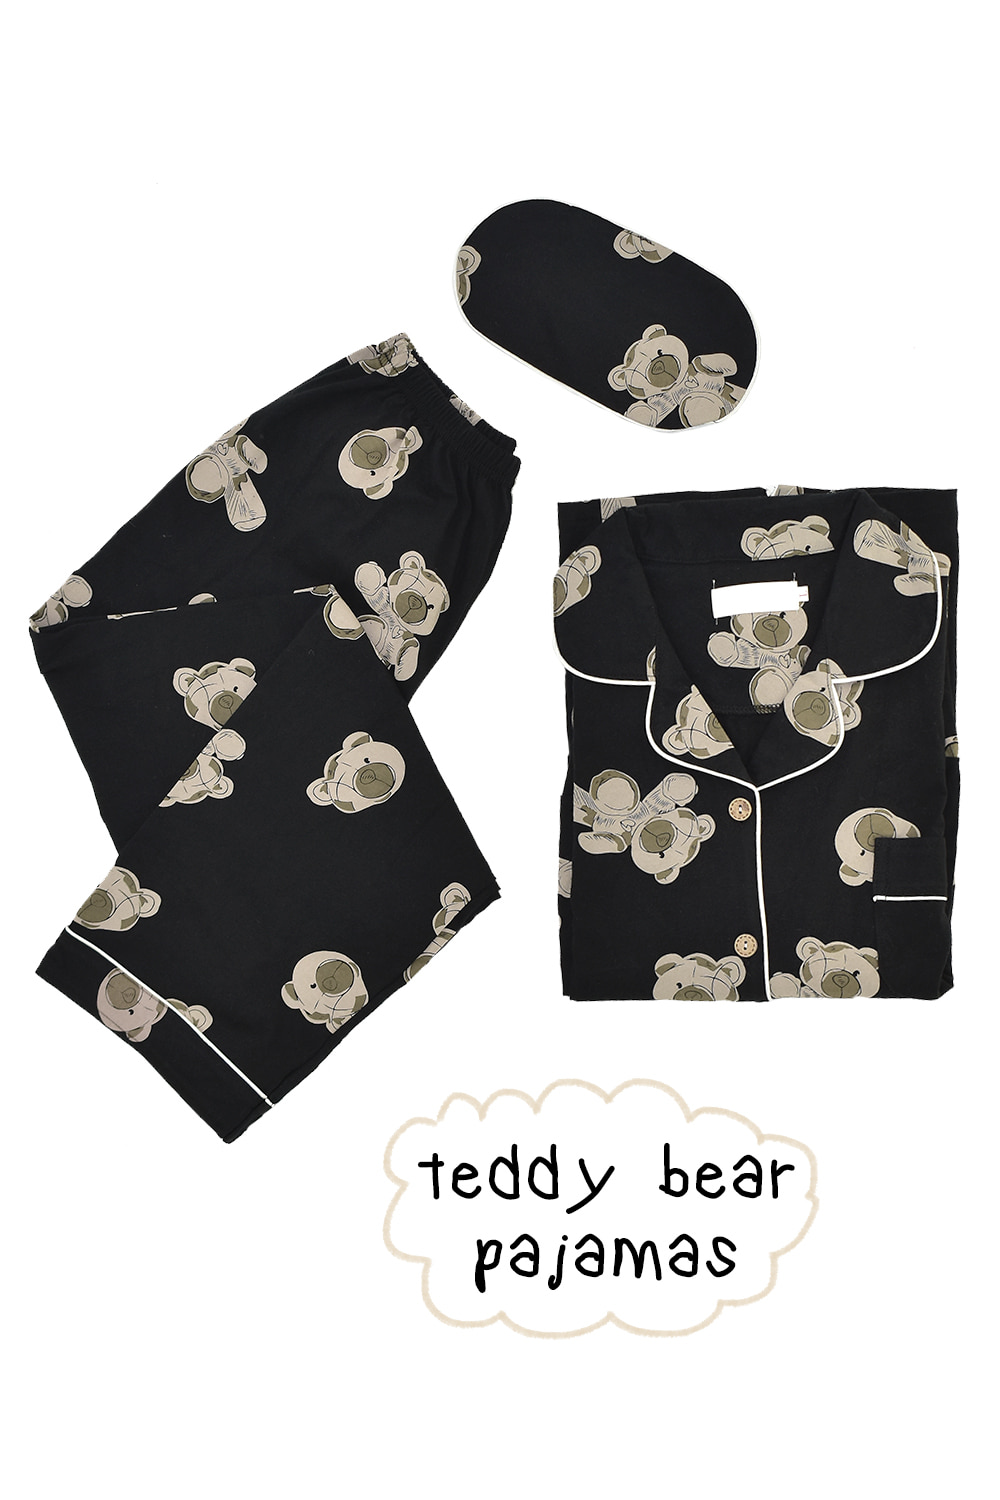 teddy bear pajamas